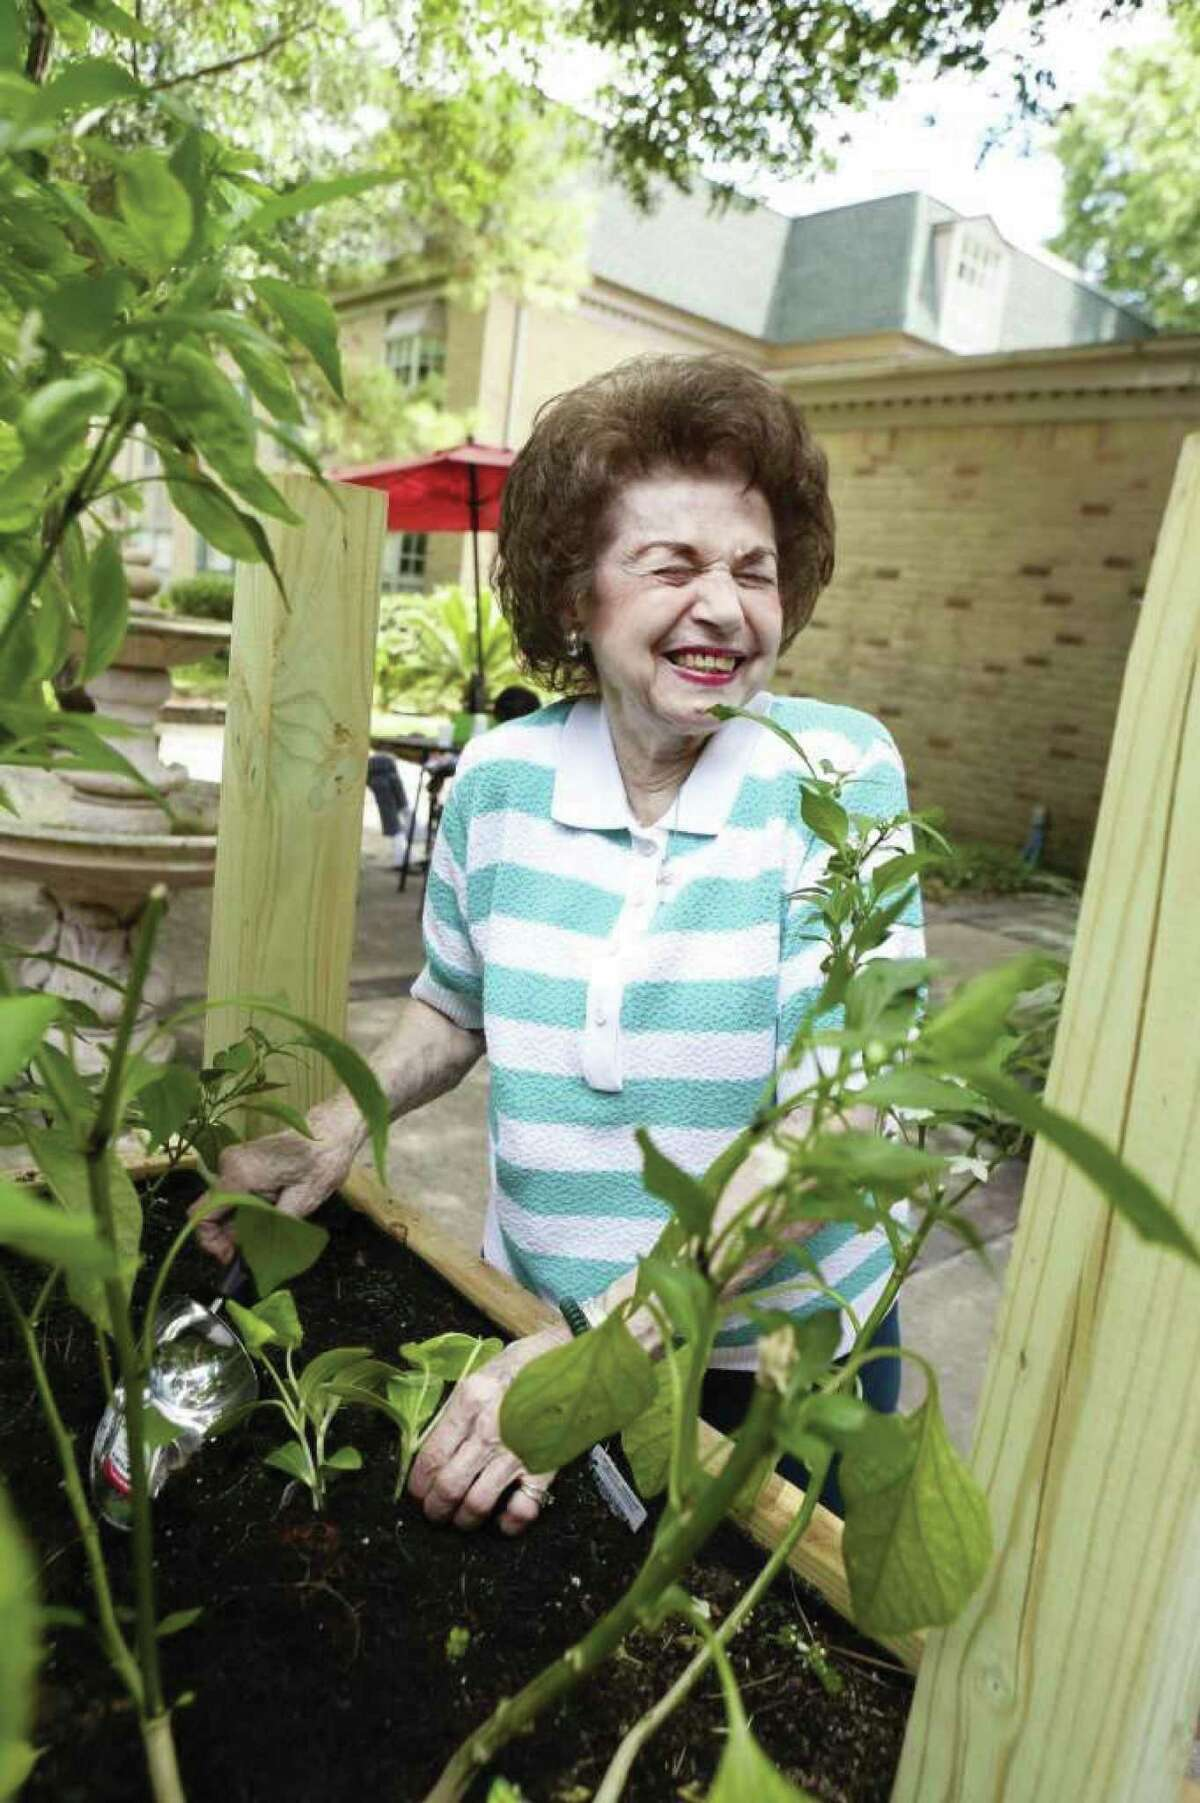 Resident Carmela Scalise hadn't previously considered a senior living community, but now says Treemont Retirement Community is a